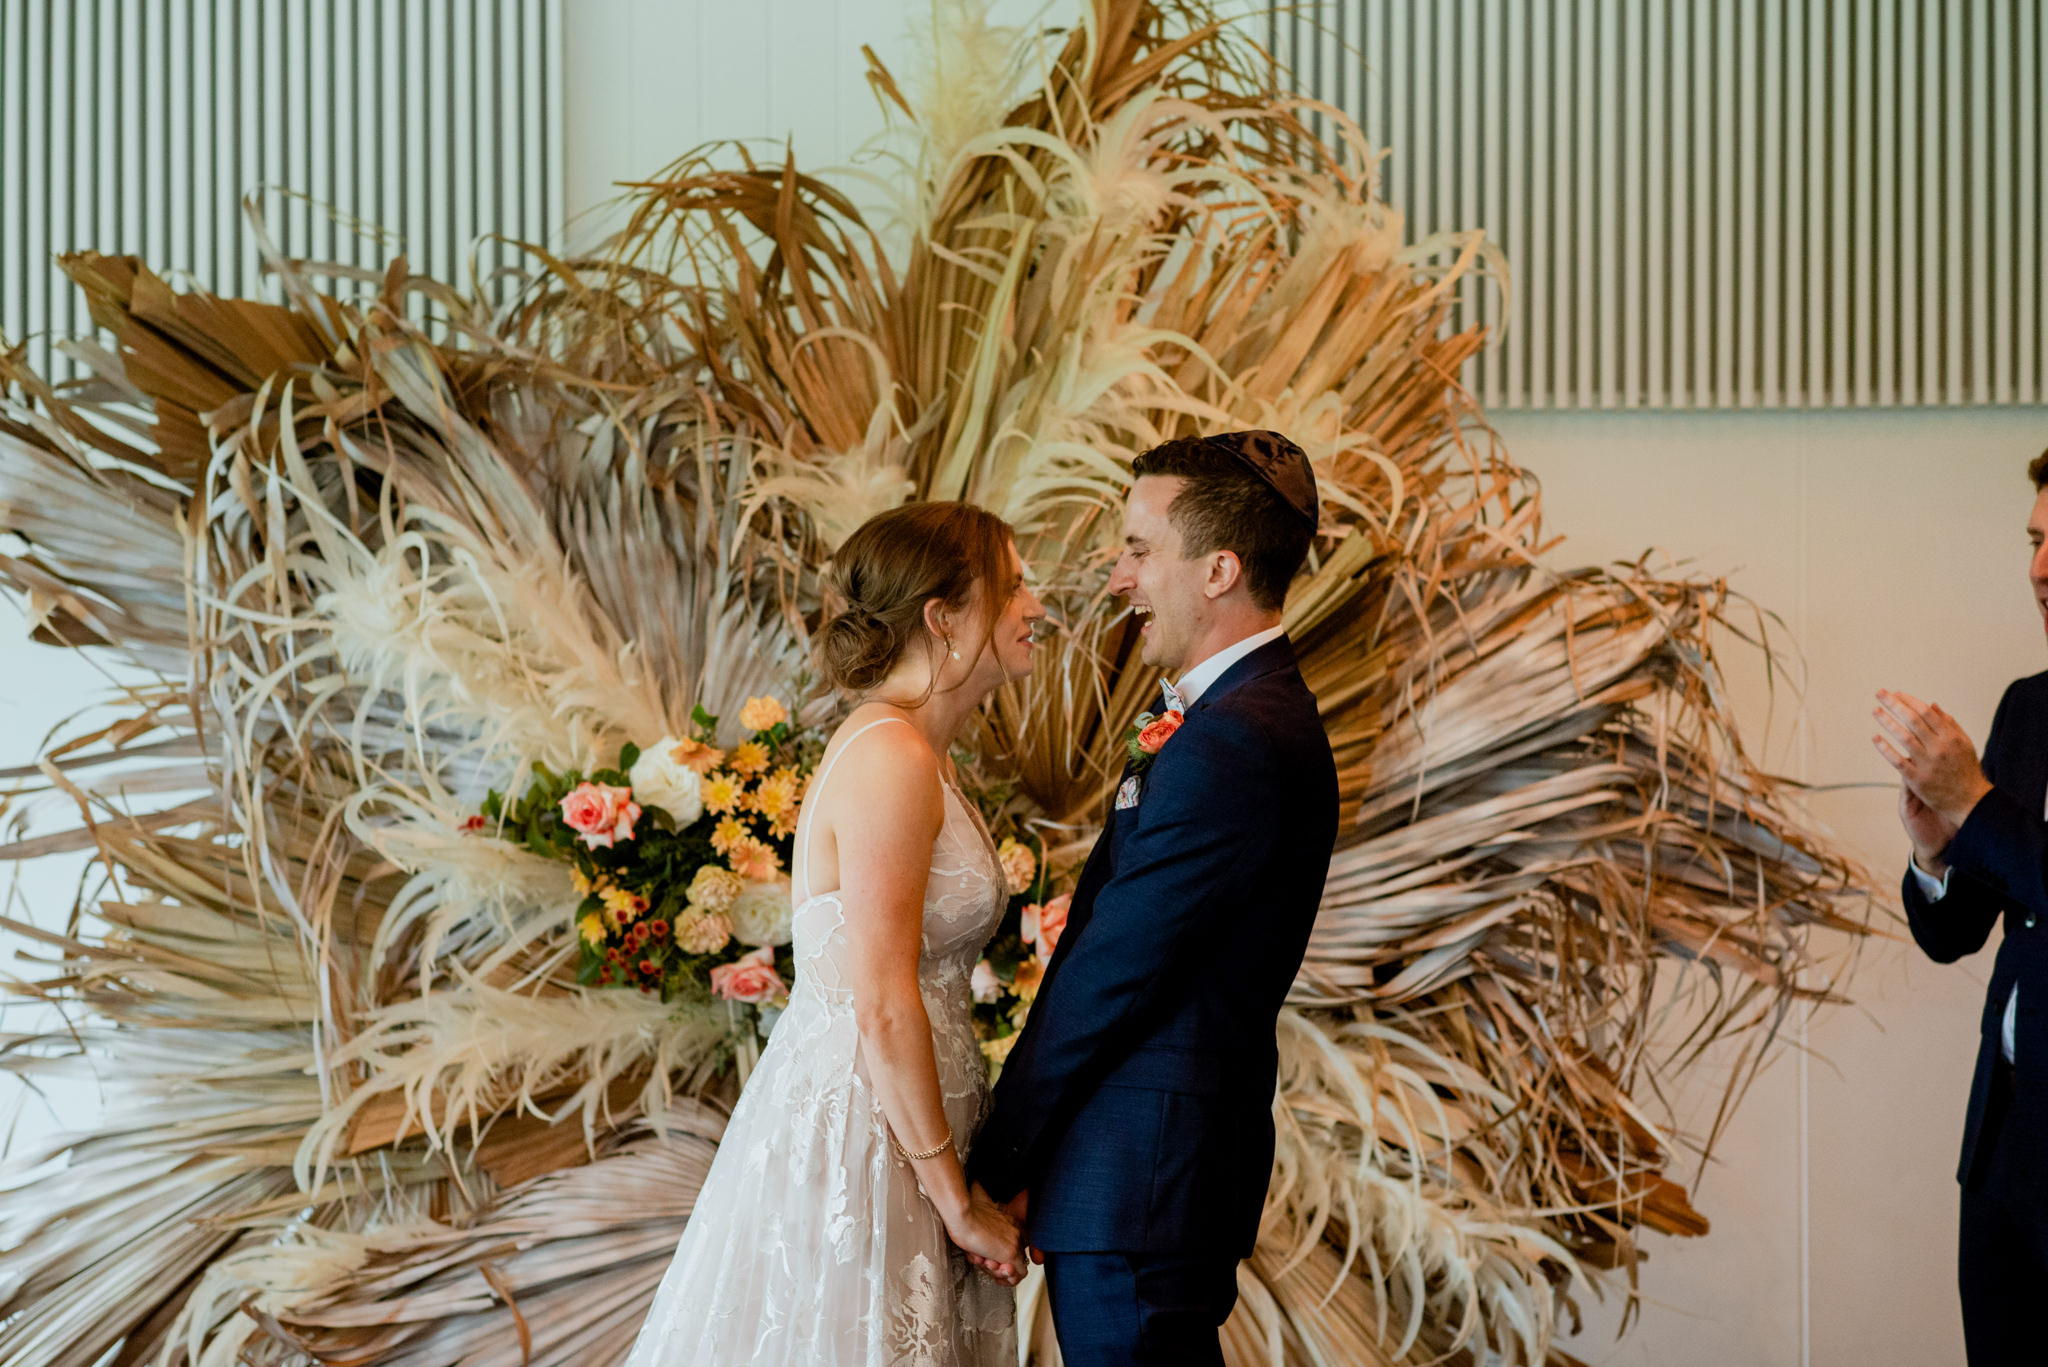 Bride and groom laugh after sharing their first kiss